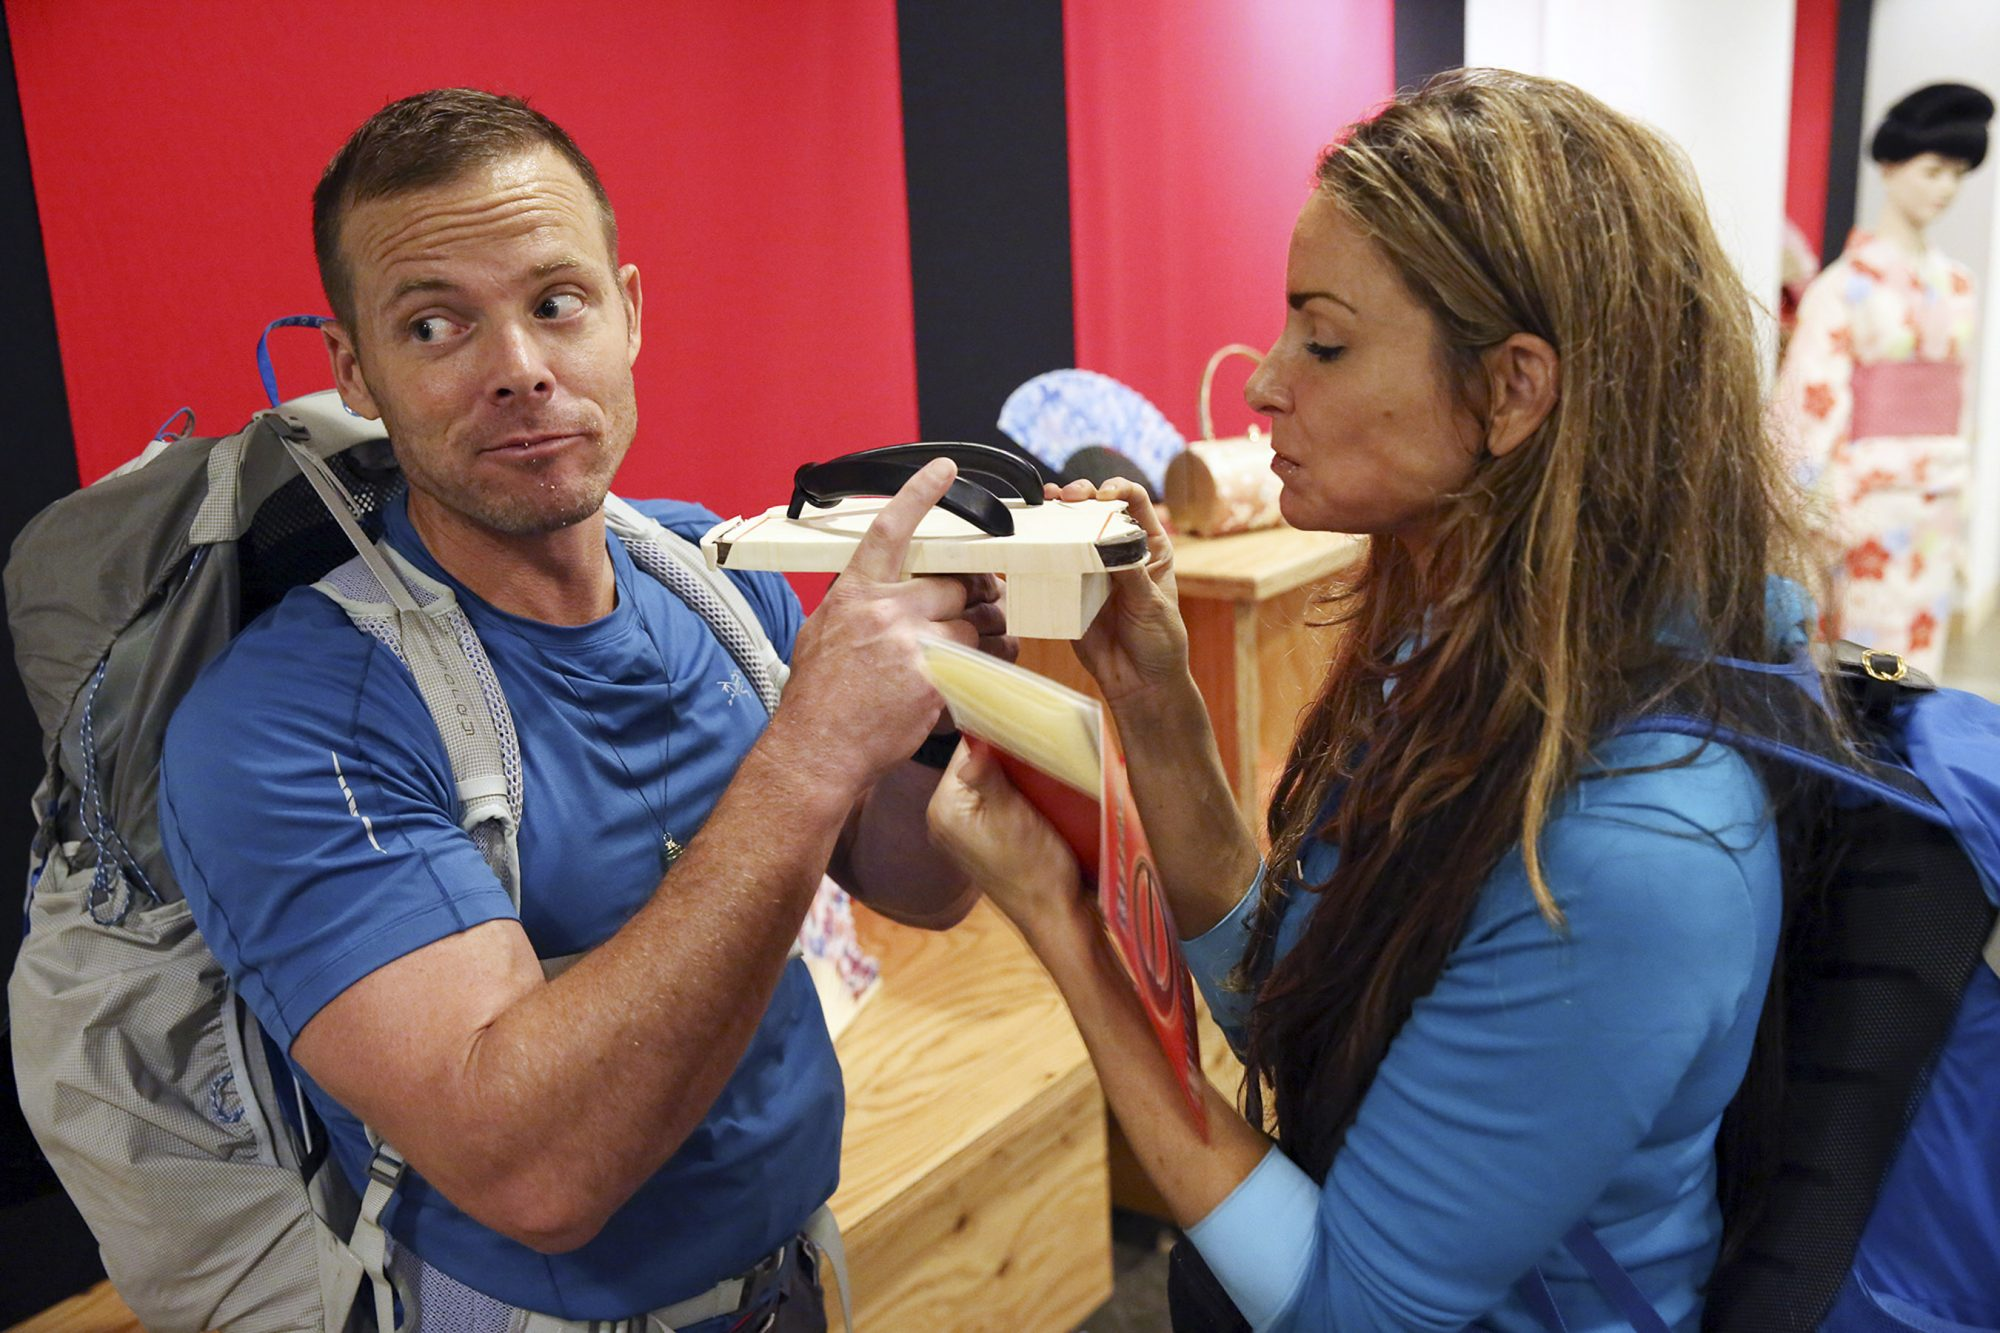 Pictured L-R: Colin Guinn and Christie Woods on THE AMAZING RACE Wednesday, April 17 (9:00-10:00 PM, ET/PT) on the CBS Television Network. Photo: Monty Brinton/CBS ©2018 CBS Broadcasting, Inc. All Rights Reserved